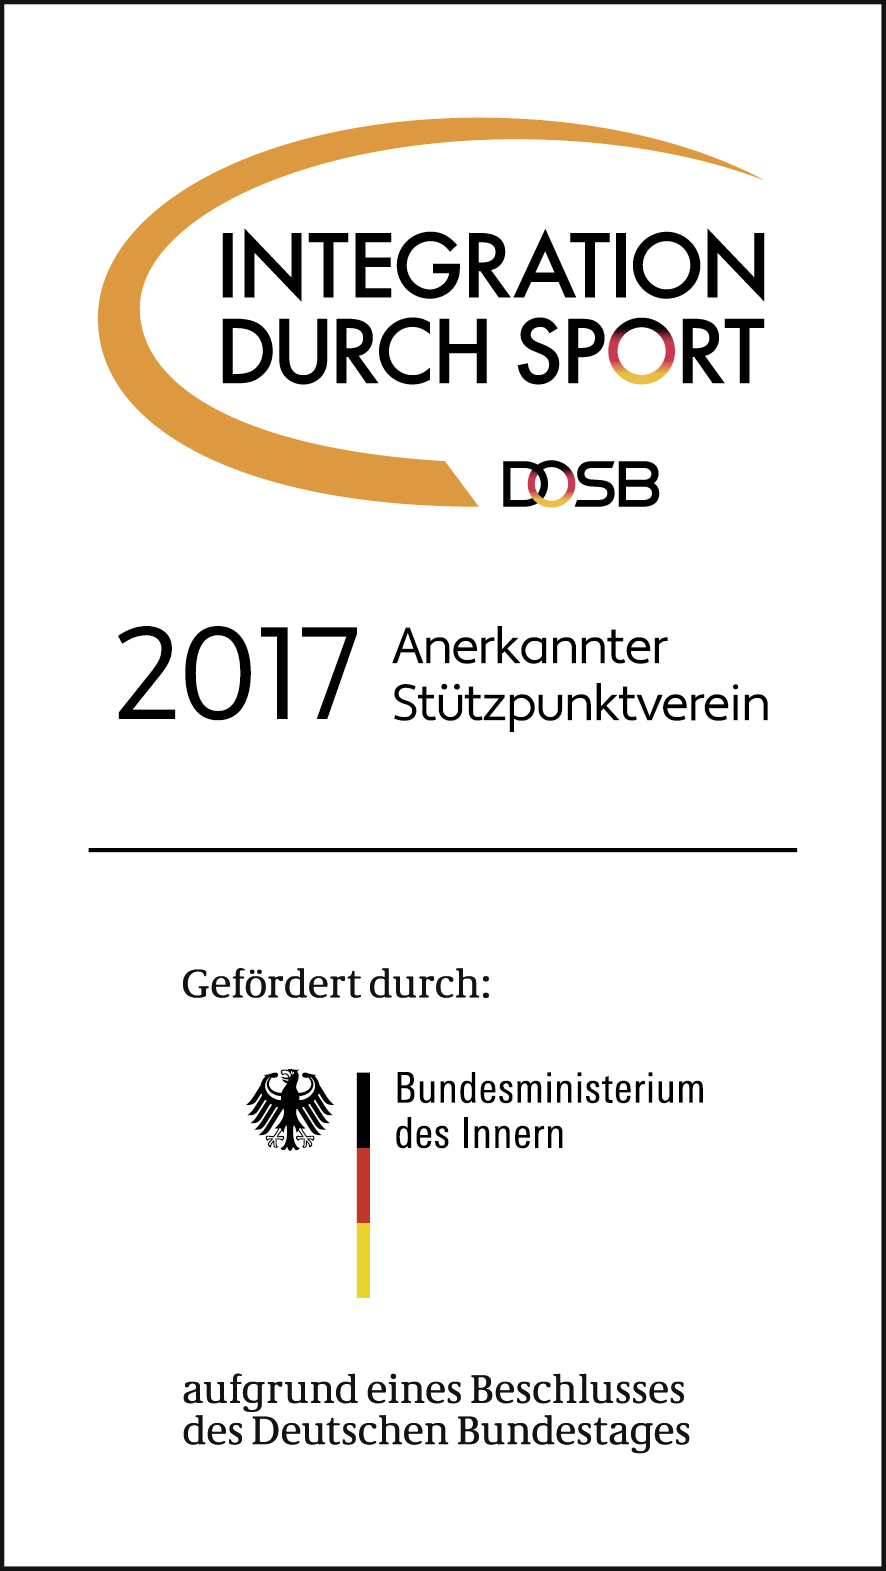 IntegrationDurchSport